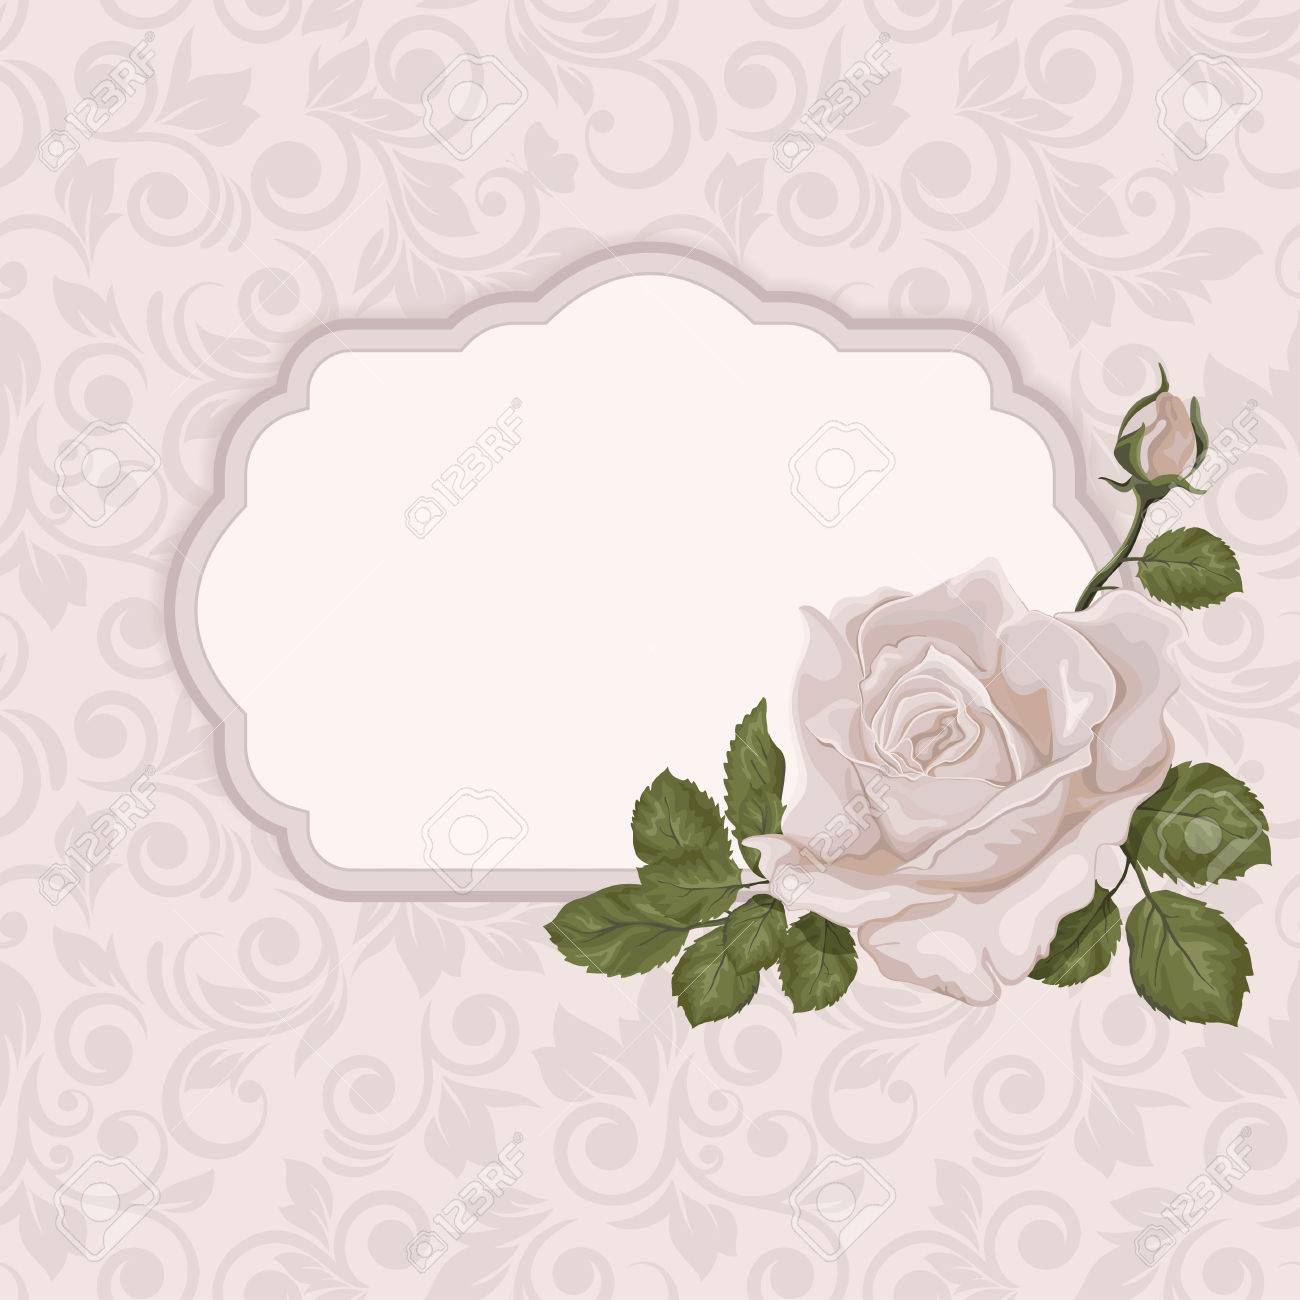 Card with rose and frame in pastel colors wedding card or card with rose and frame in pastel colors wedding card or invitation with abstract flora background stopboris Image collections